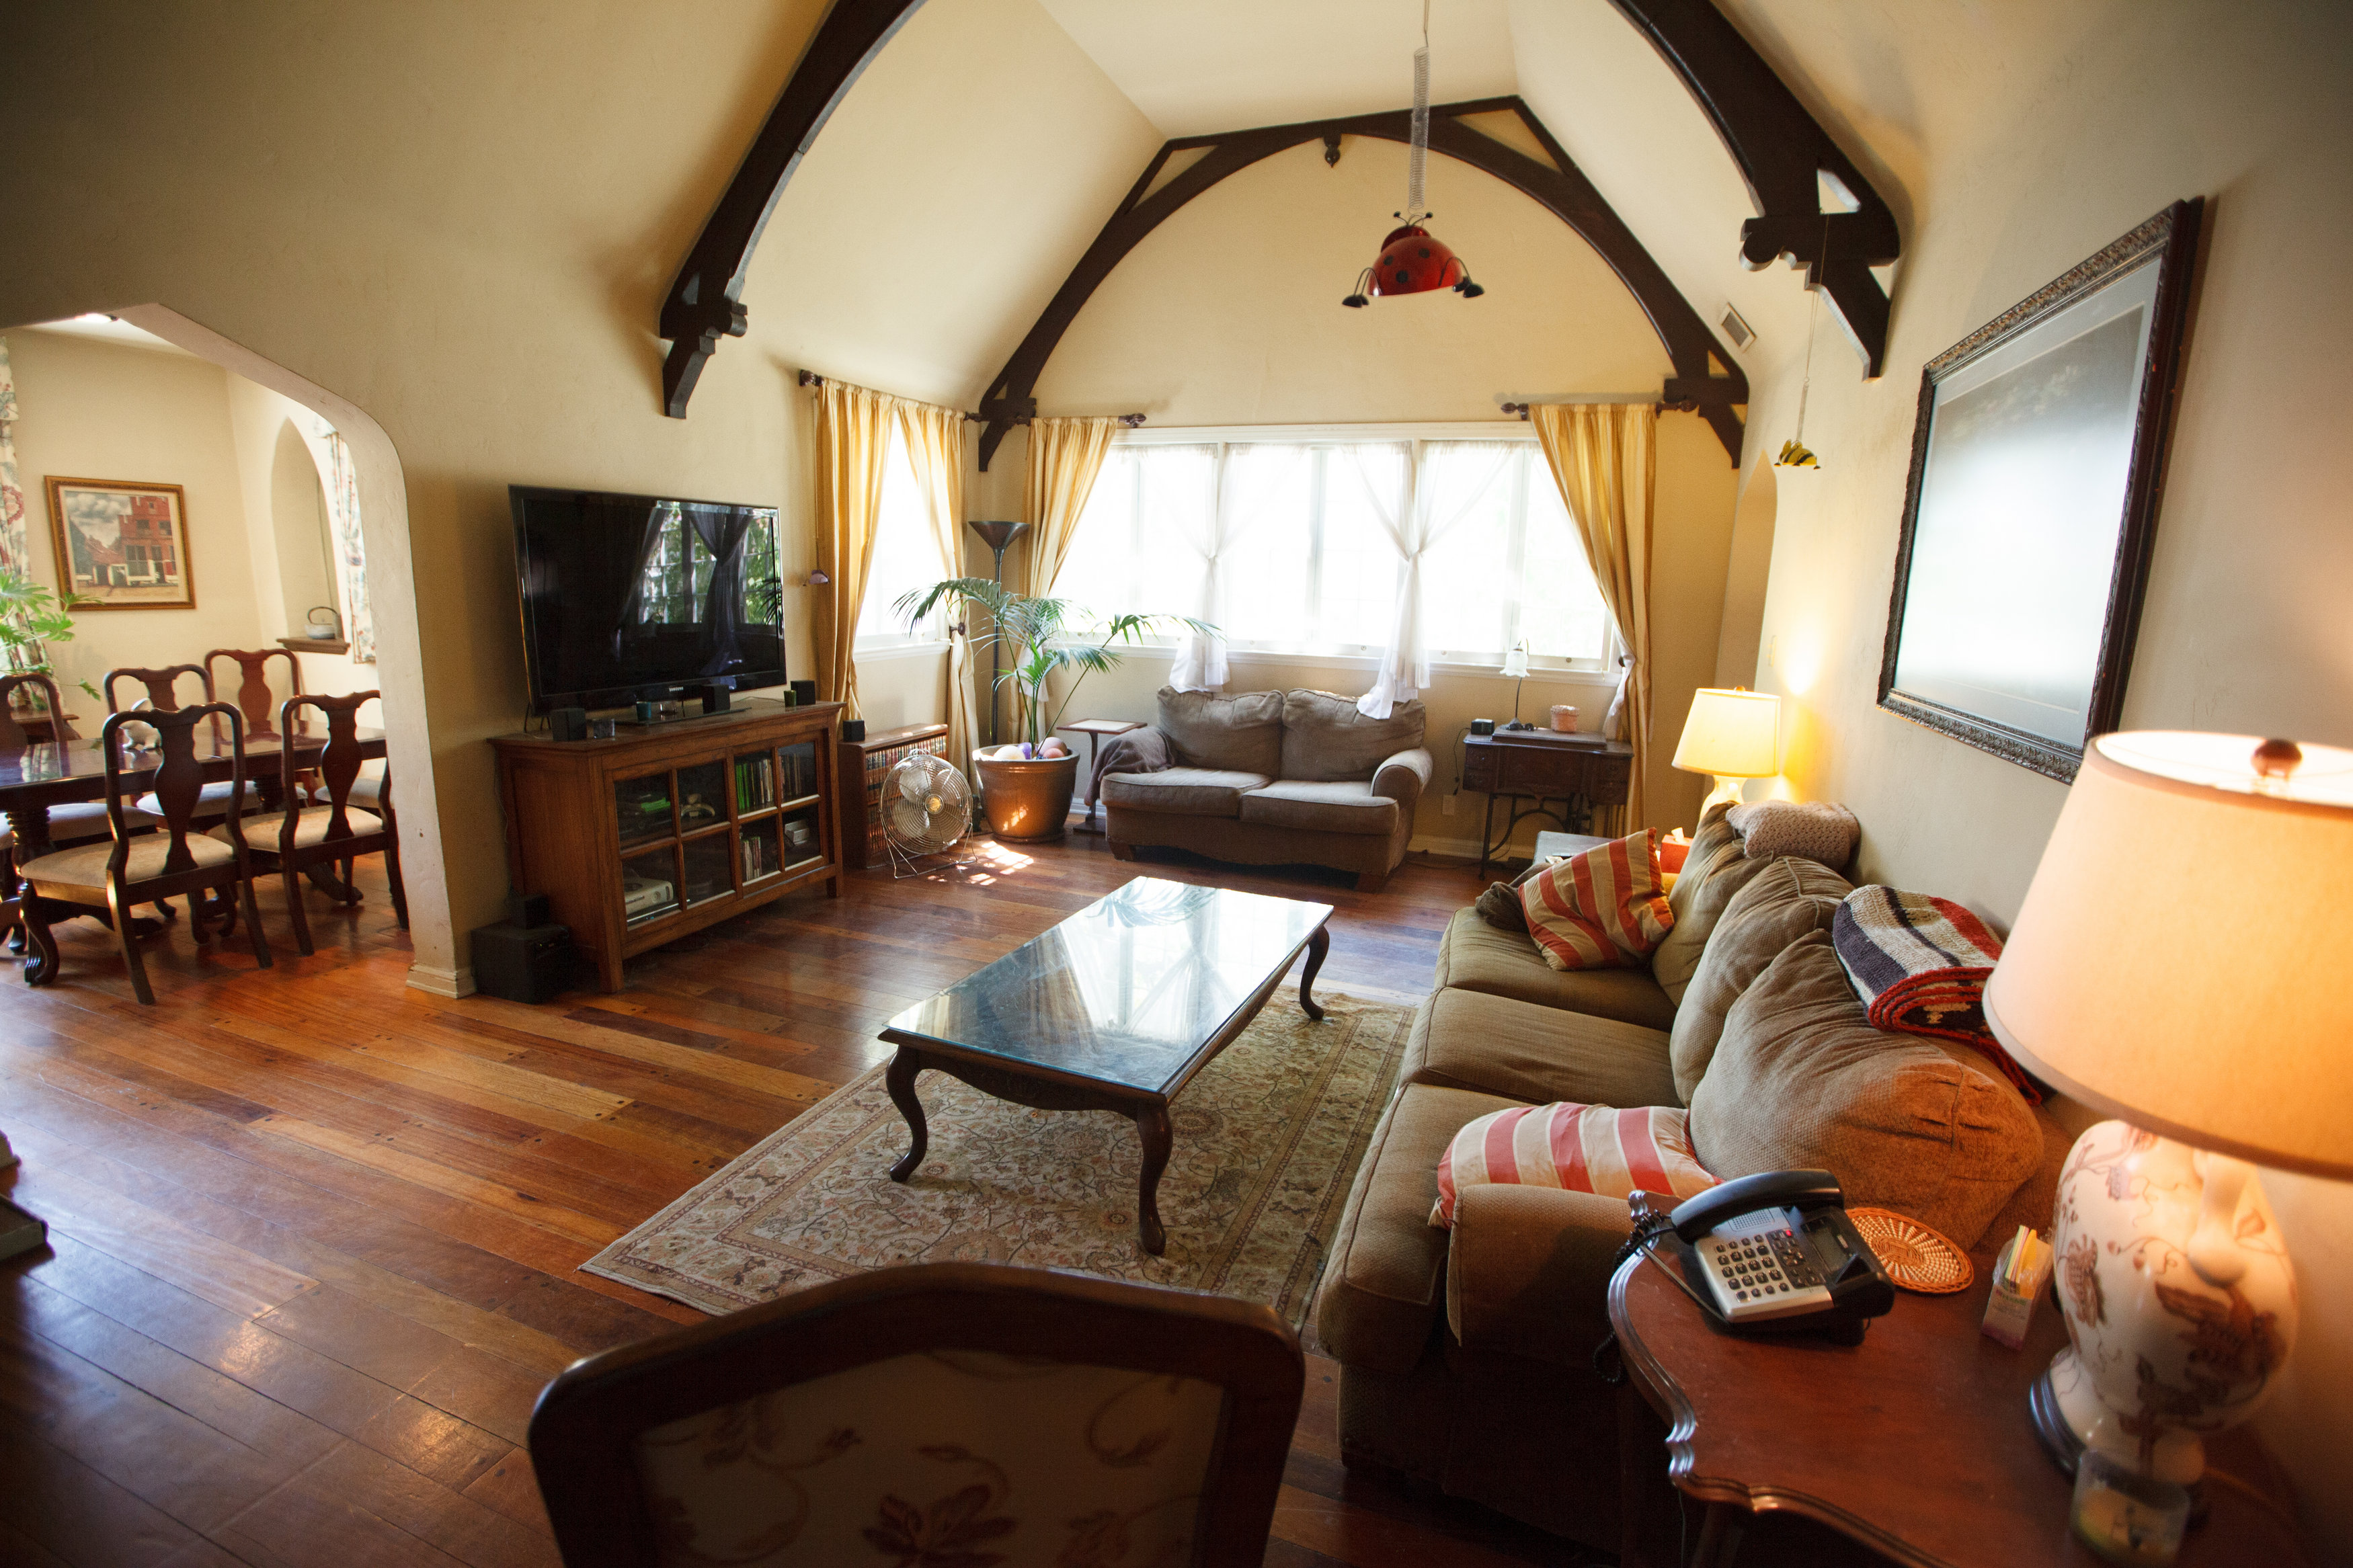 54c1311f9a66b_-_ep-101---andrew-s-living-room-before Nate Berkus Home Designs on target home designs, star home designs, nate berkus room designs, jeff lewis home designs, ivory home designs, simple home designs, small spaces nate berkus designs, disney home designs, martha stewart home designs,